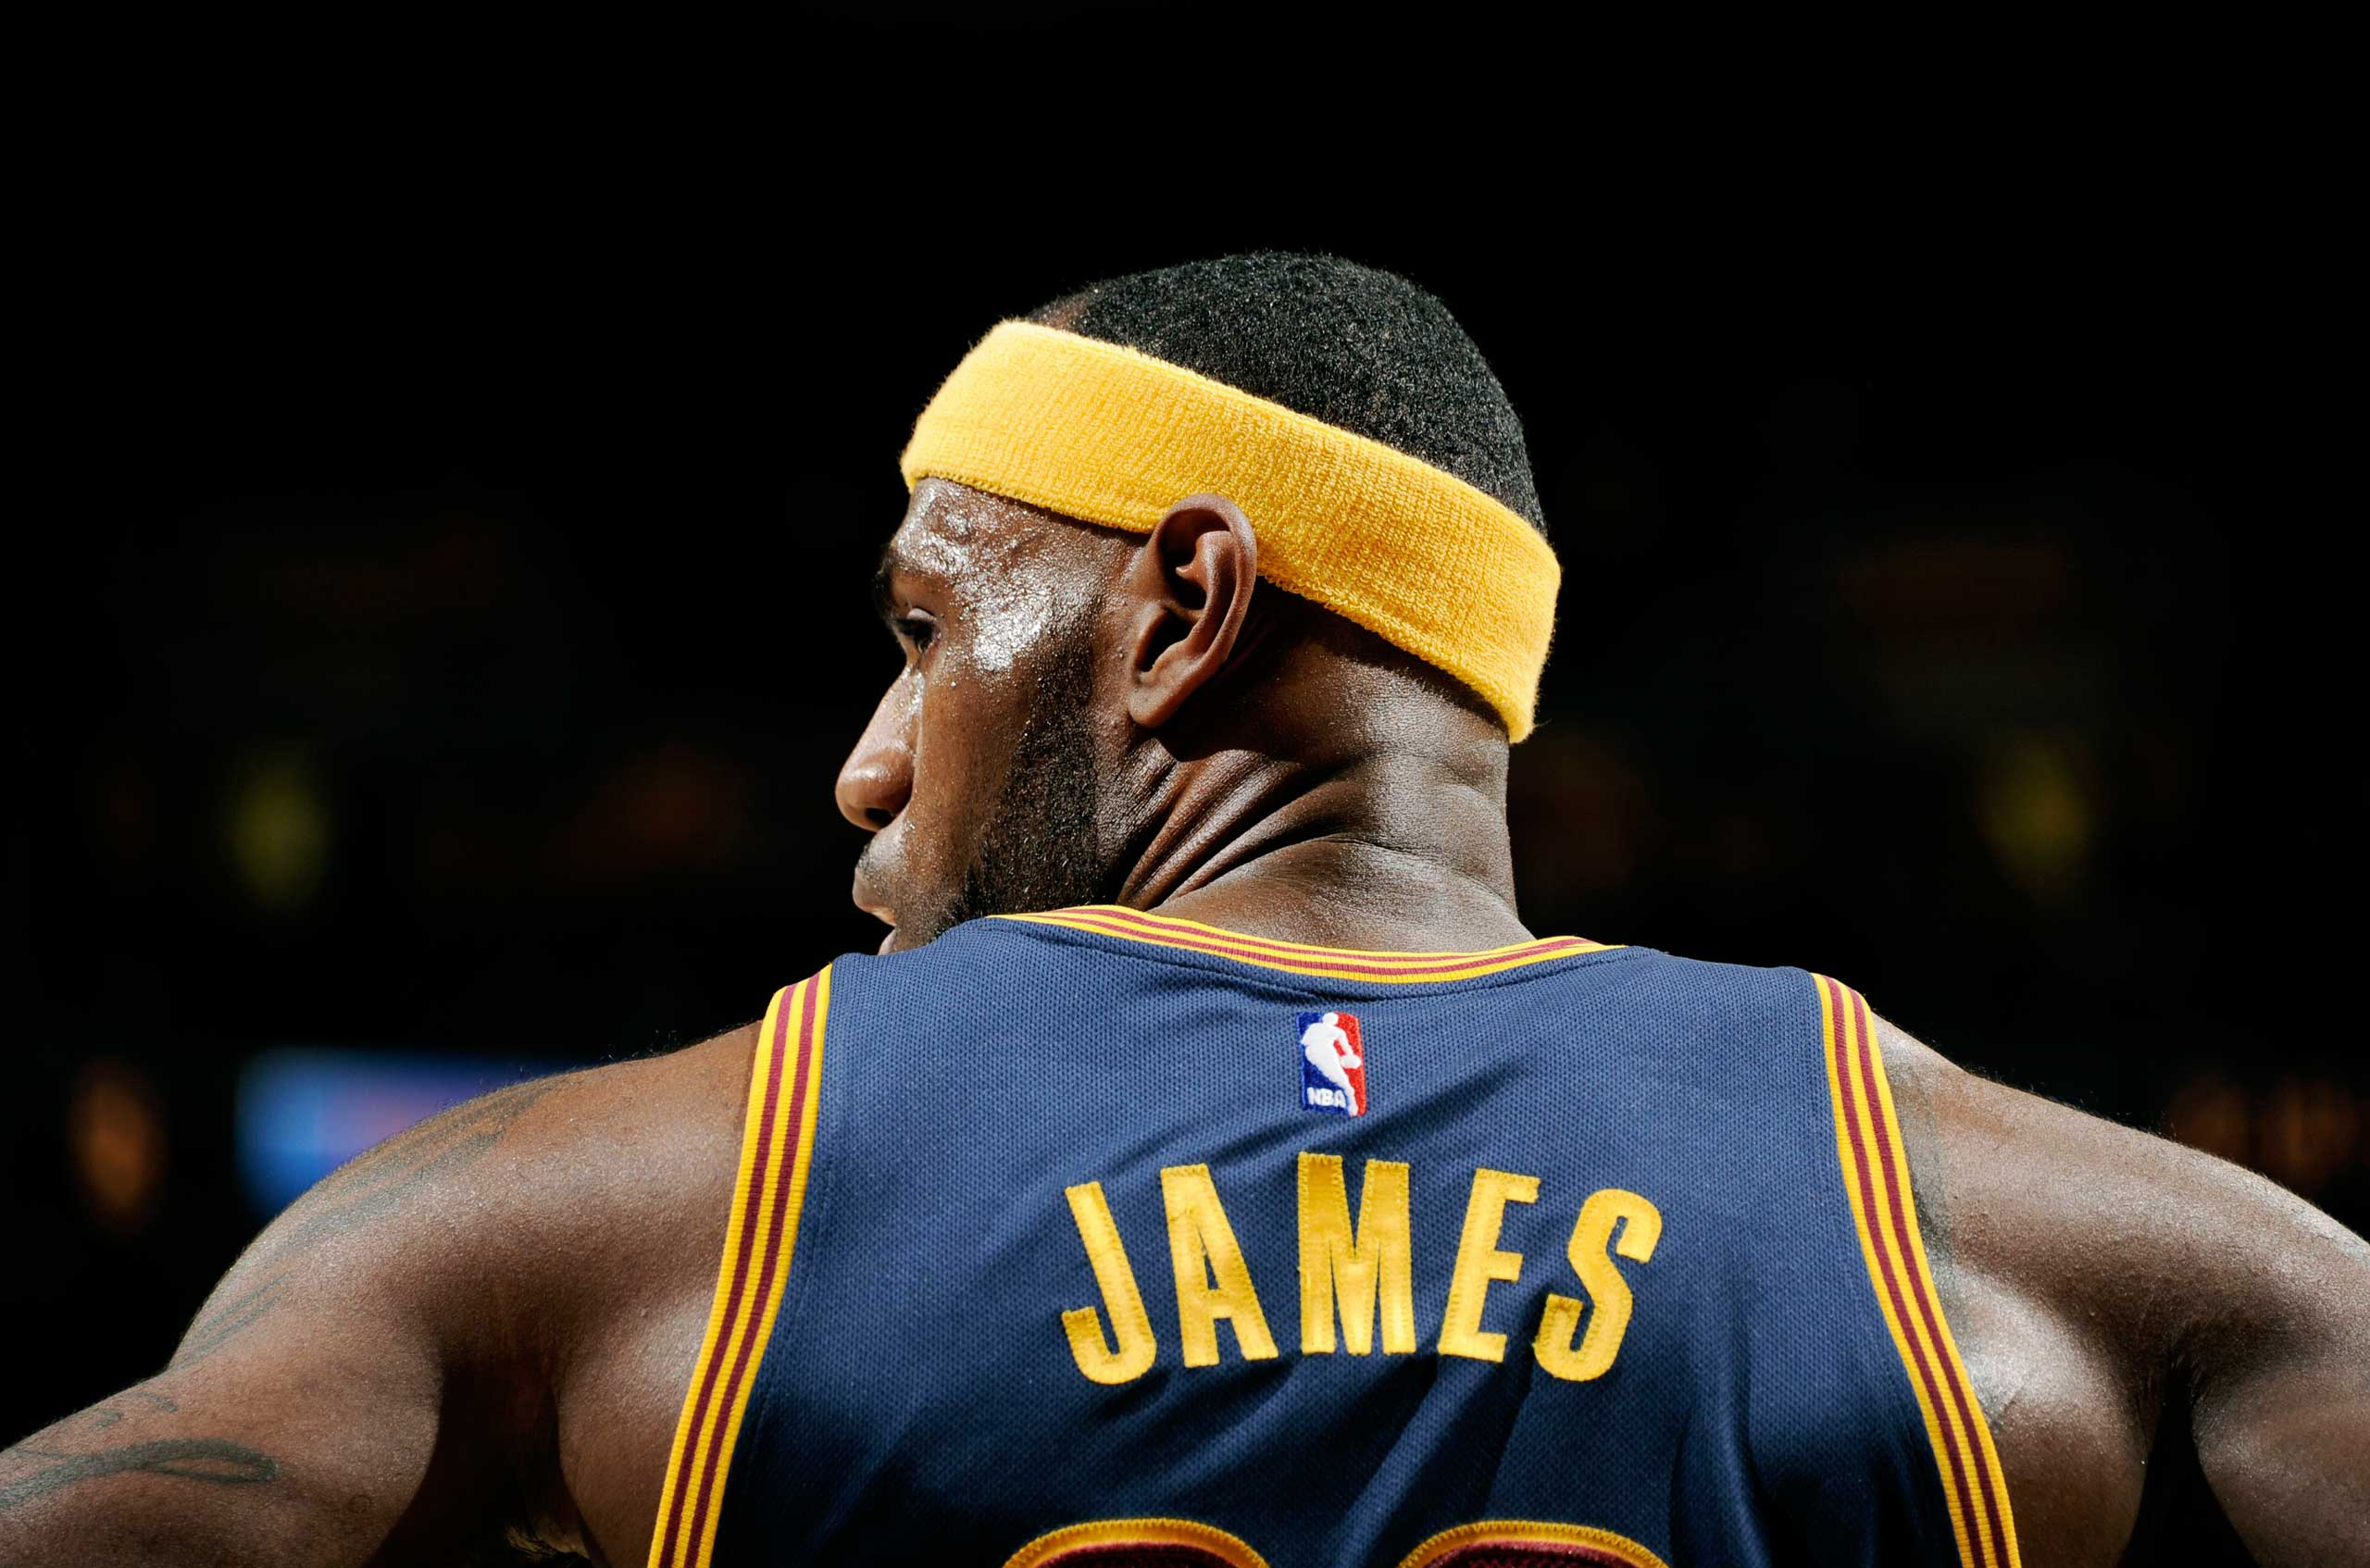 LeBron James #23 of the Cleveland Cavaliers stands on the court during a game against the New York Knicks on Oct. 30, 2014 in Cleveland, Ohio.